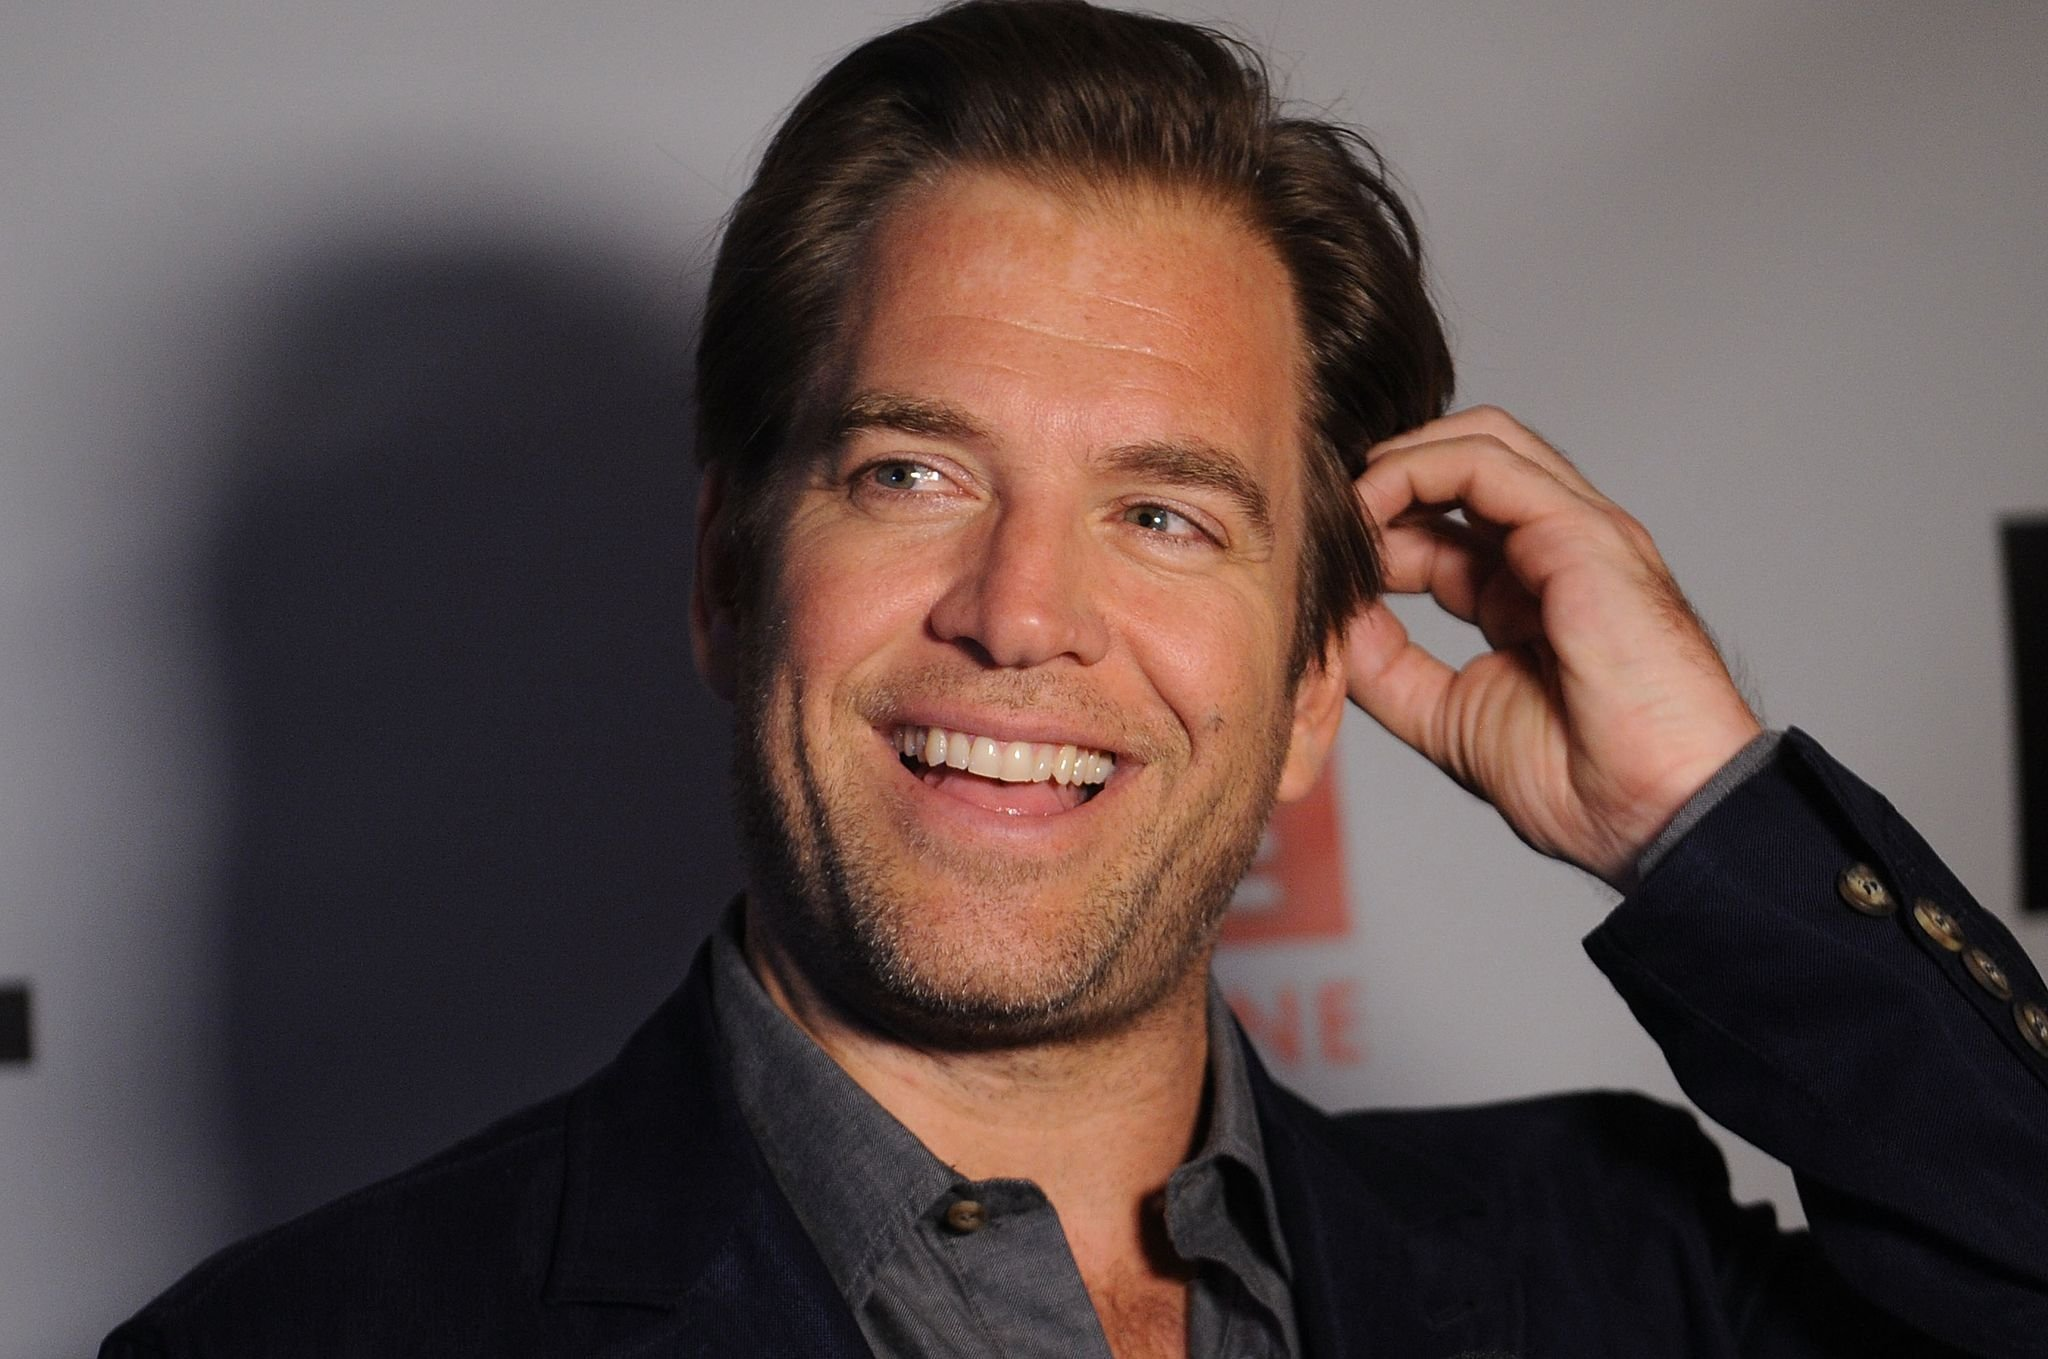 Michael Weatherly didn't want to stay in the same role any longer / Getty Images